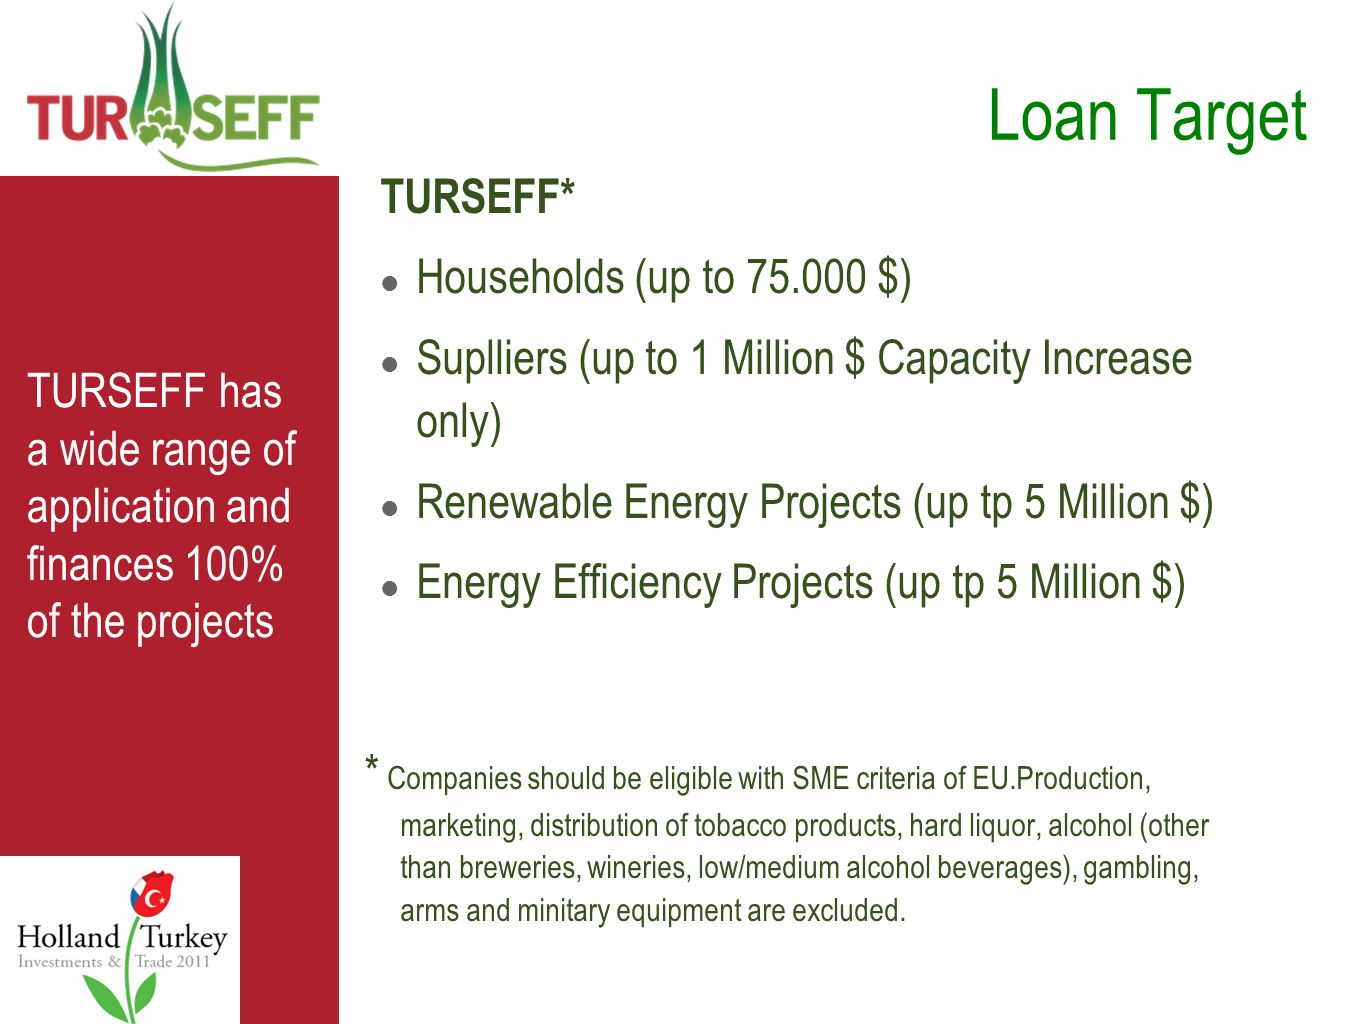 TURSEFF has a wide range of application and finances 100% of the projects TURSEFF* Households (up to 75.000 $) Suplliers (up to 1 Million $ Capacity Increase only) Renewable Energy Projects (up tp 5 Million $) Energy Efficiency Projects (up tp 5 Million $) Loan Target * Companies should be eligible with SME criteria of EU.Production, marketing, distribution of tobacco products, hard liquor, alcohol (other than breweries, wineries, low/medium alcohol beverages), gambling, arms and minitary equipment are excluded.